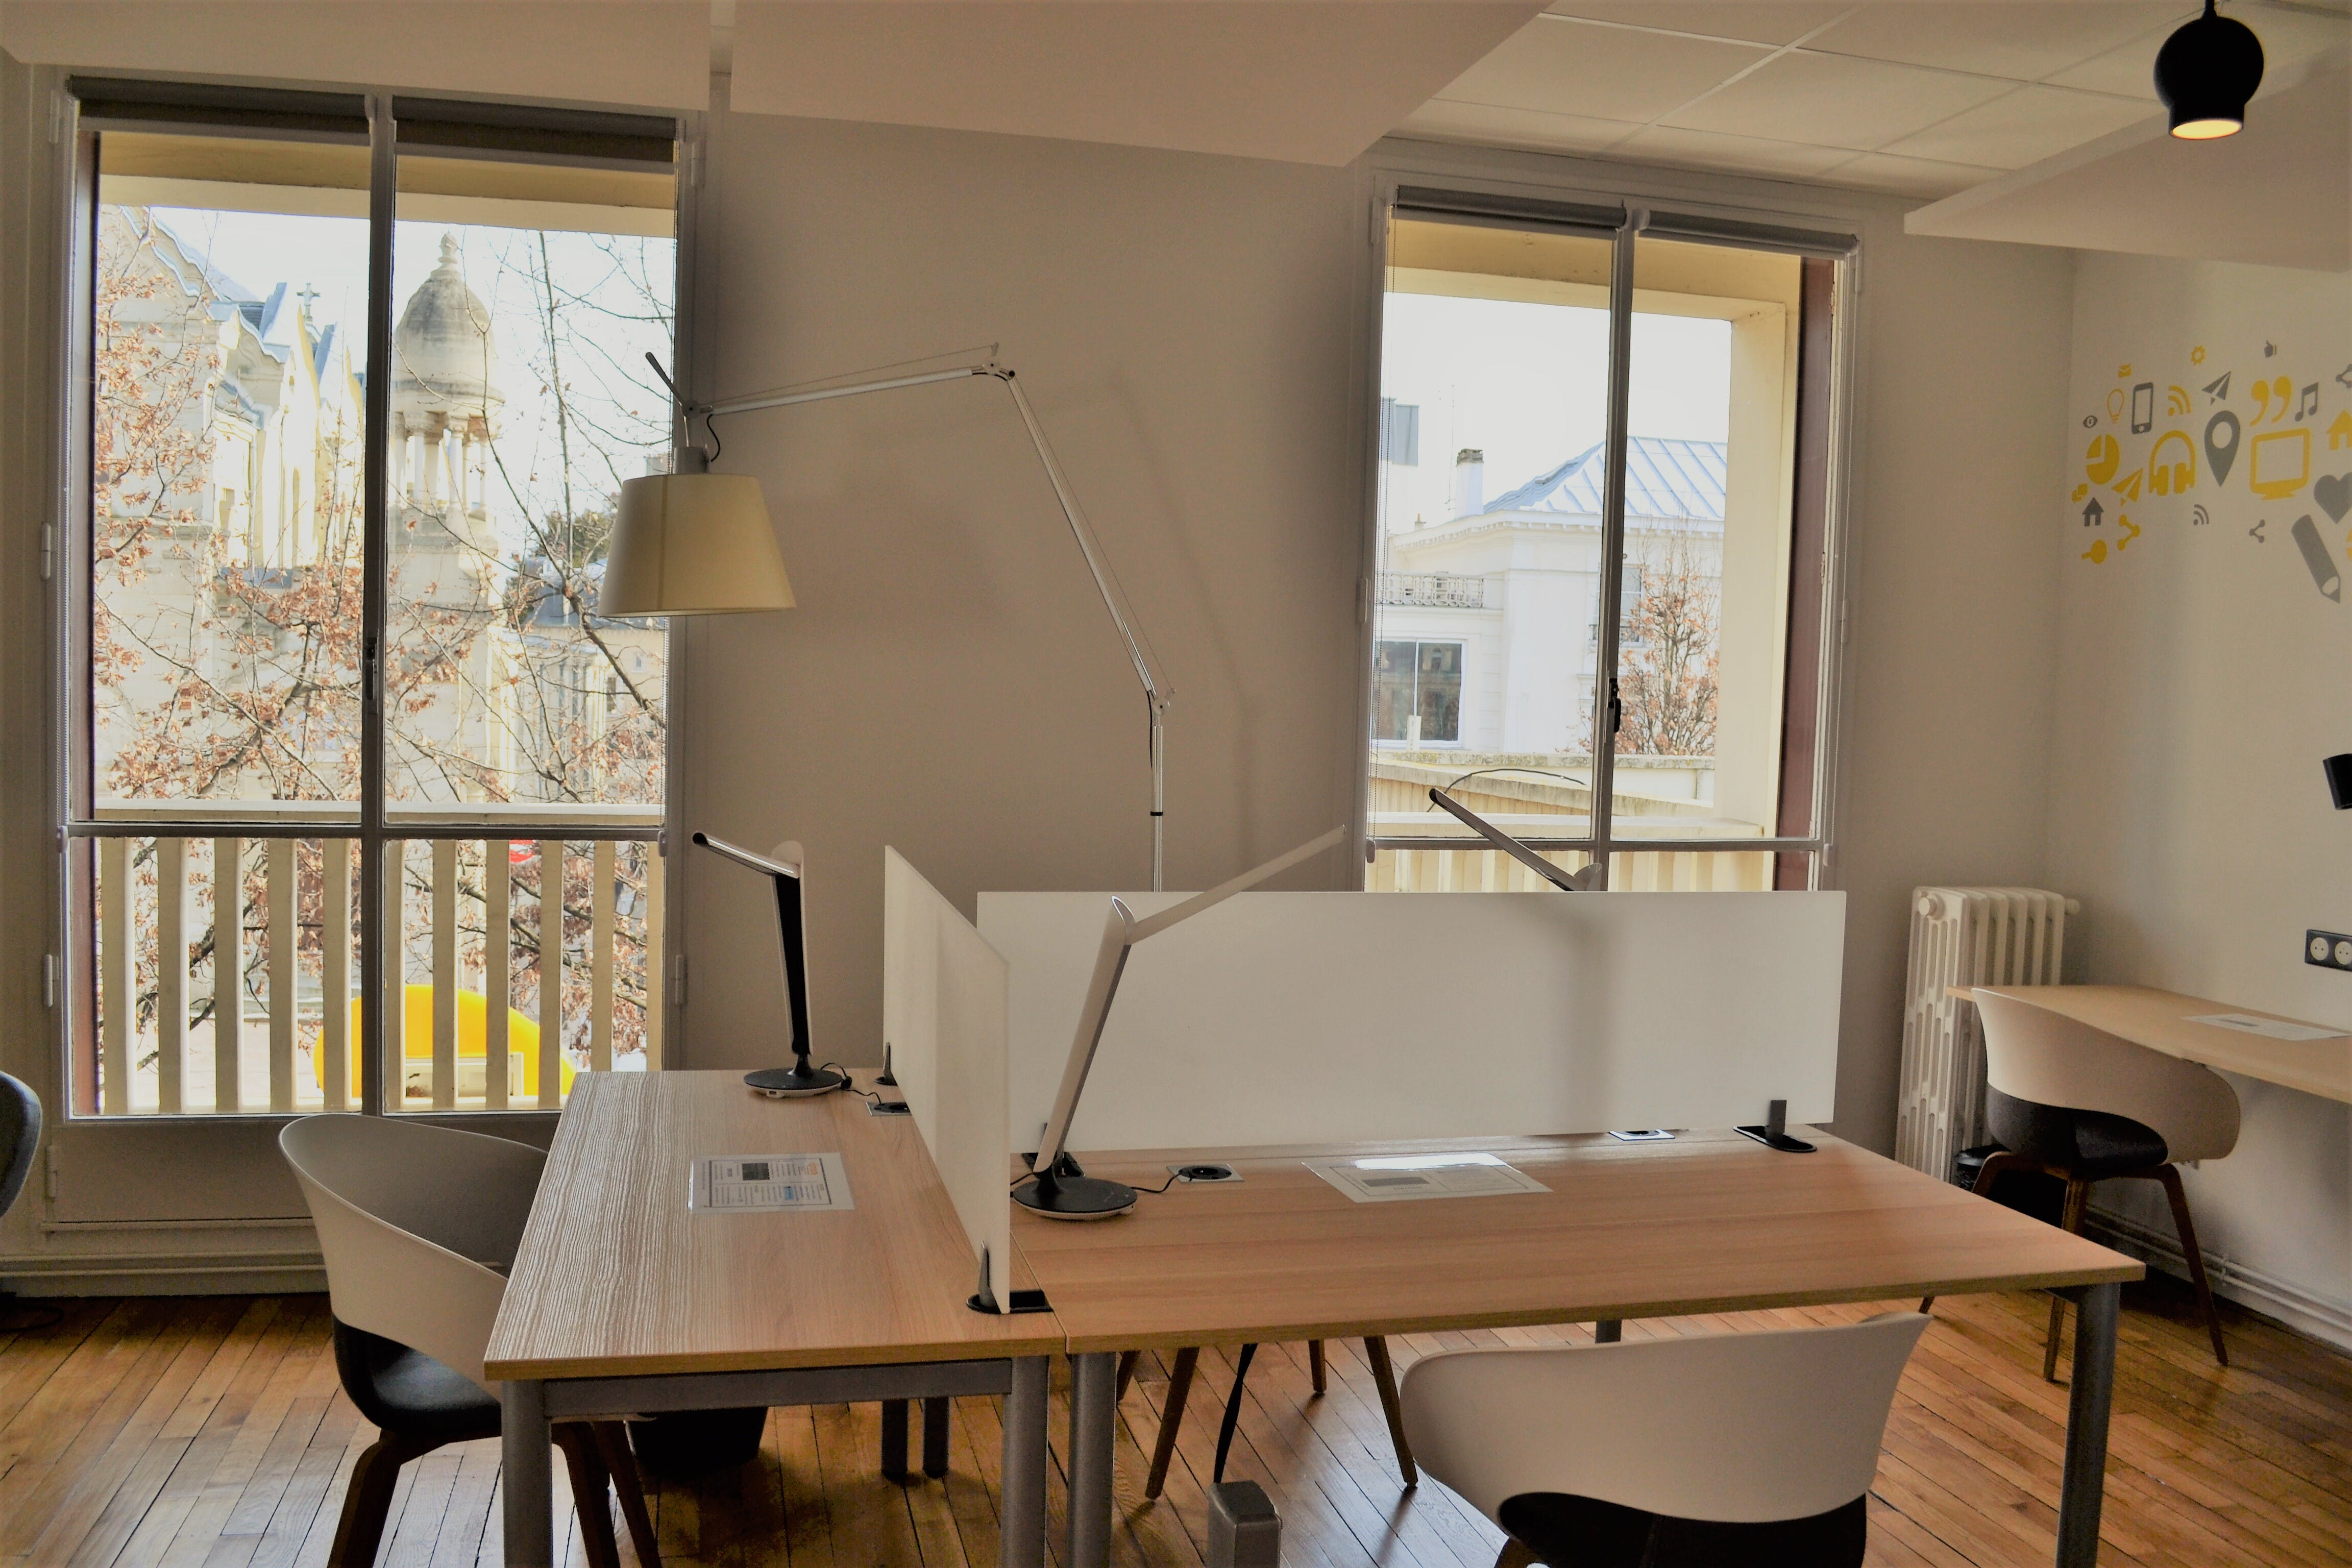 The new Nomad space opened above the post office in Enghien-les-Bains (Val-d'Oise).